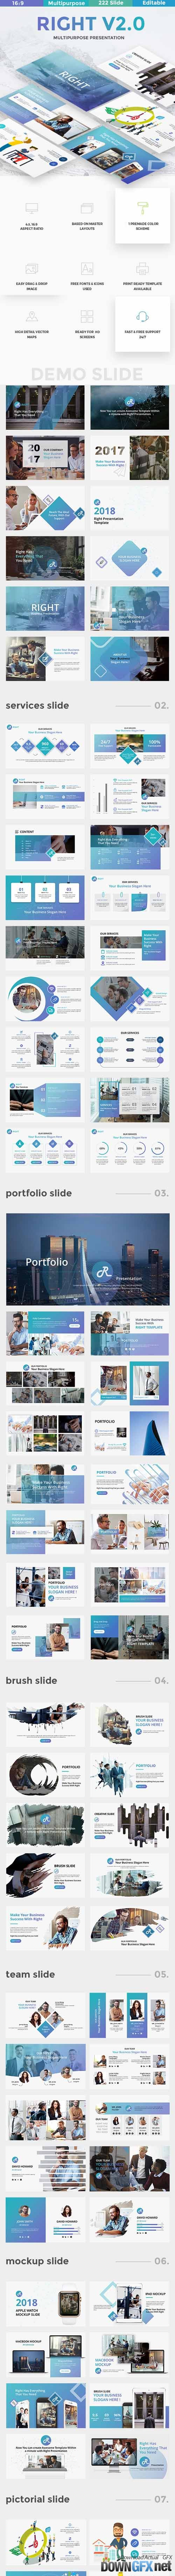 Right v2 Multipurpose Powerpoint Template 20515504